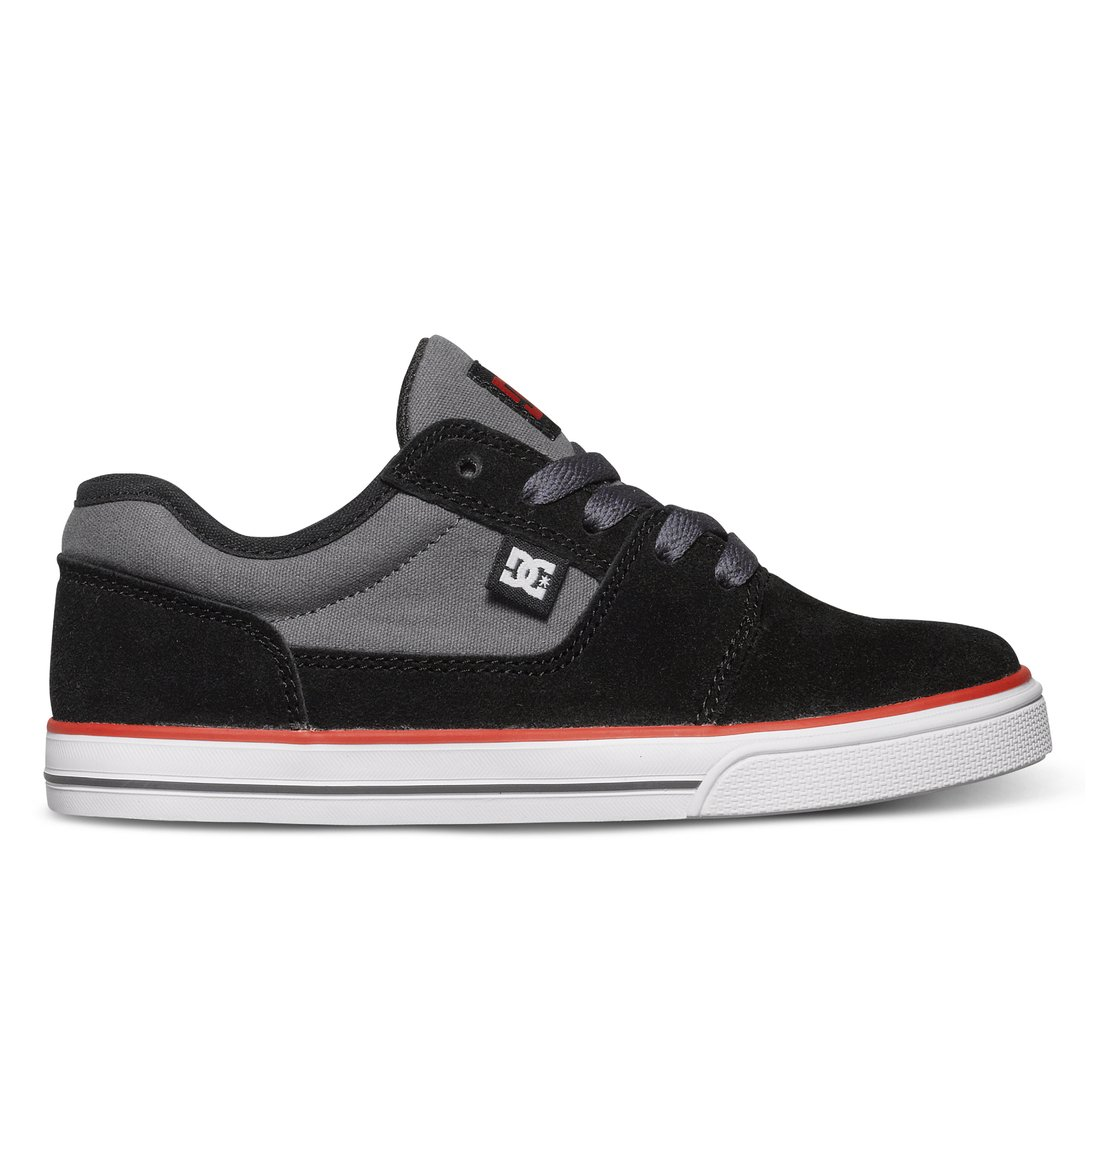 Tonik - Dcshoes������ ���� ��� ��������� Tonik �� DC Shoes � ������� �� ��������� ����� 2015�. ��������������: ����������������� �����������, ������������� ���������� �������, ��������� ������� ���������� ������� DC Pill Pattern.<br>